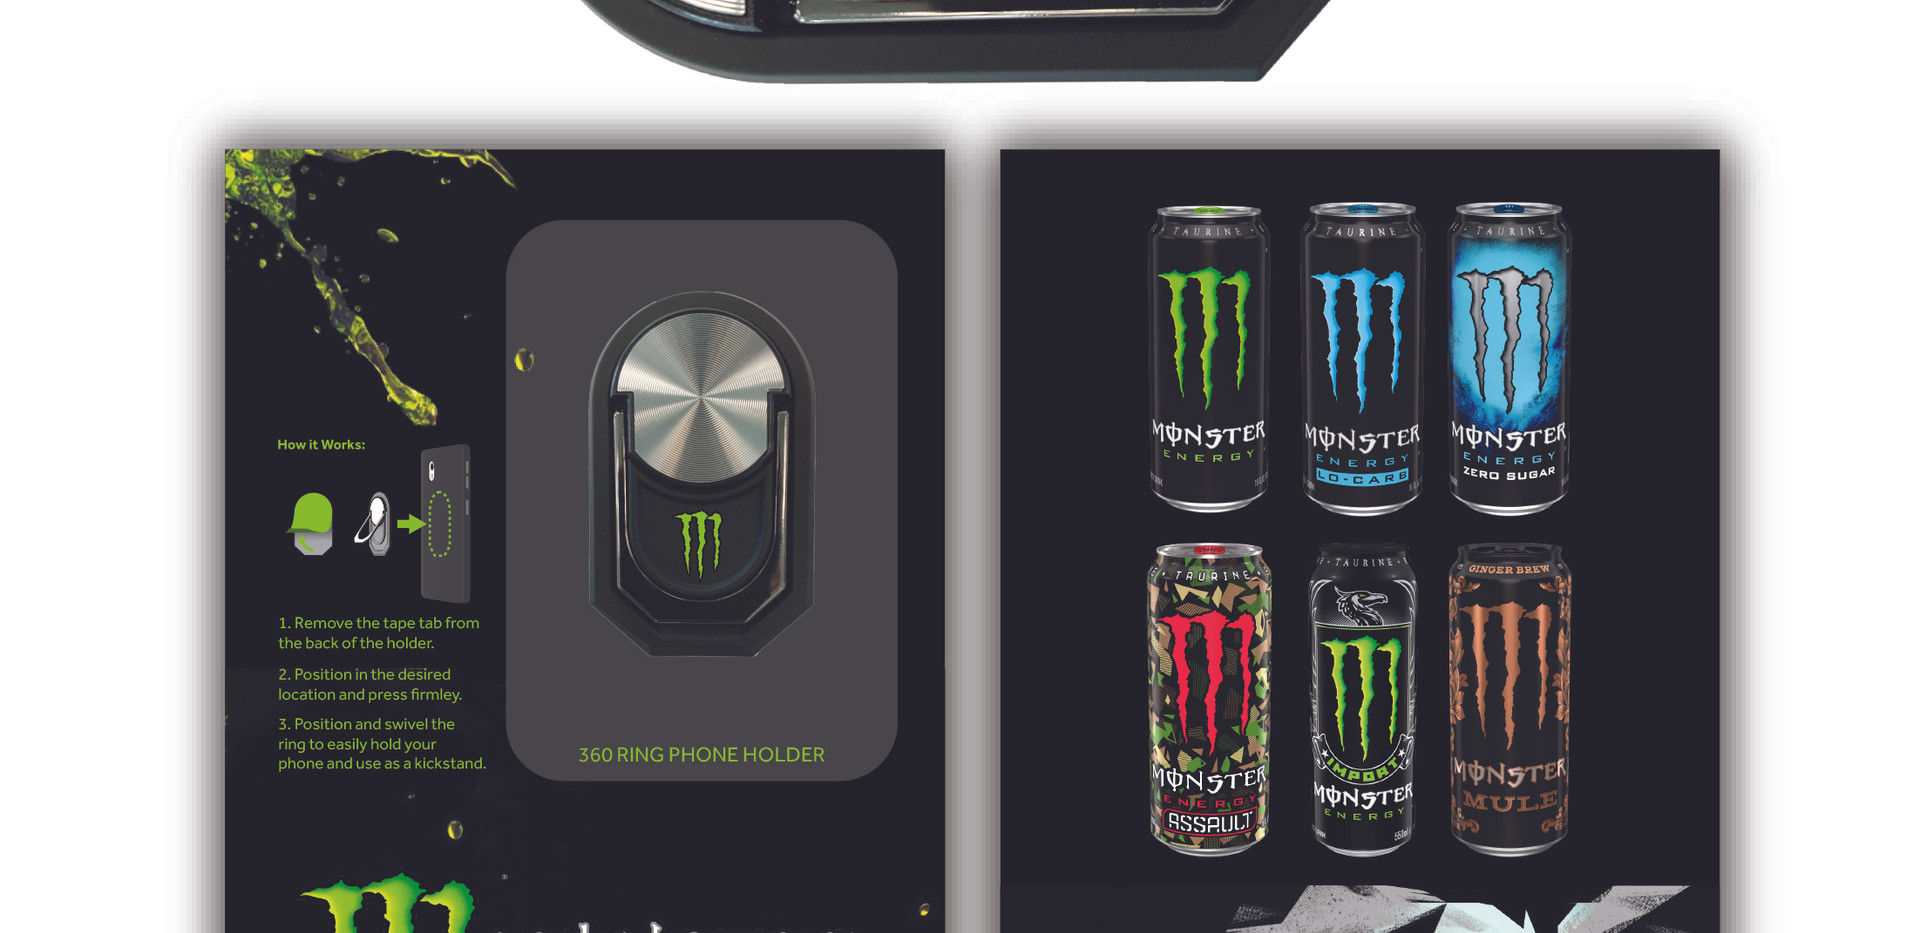 MonsterEnergy 360 Ring Phone Holder Cust